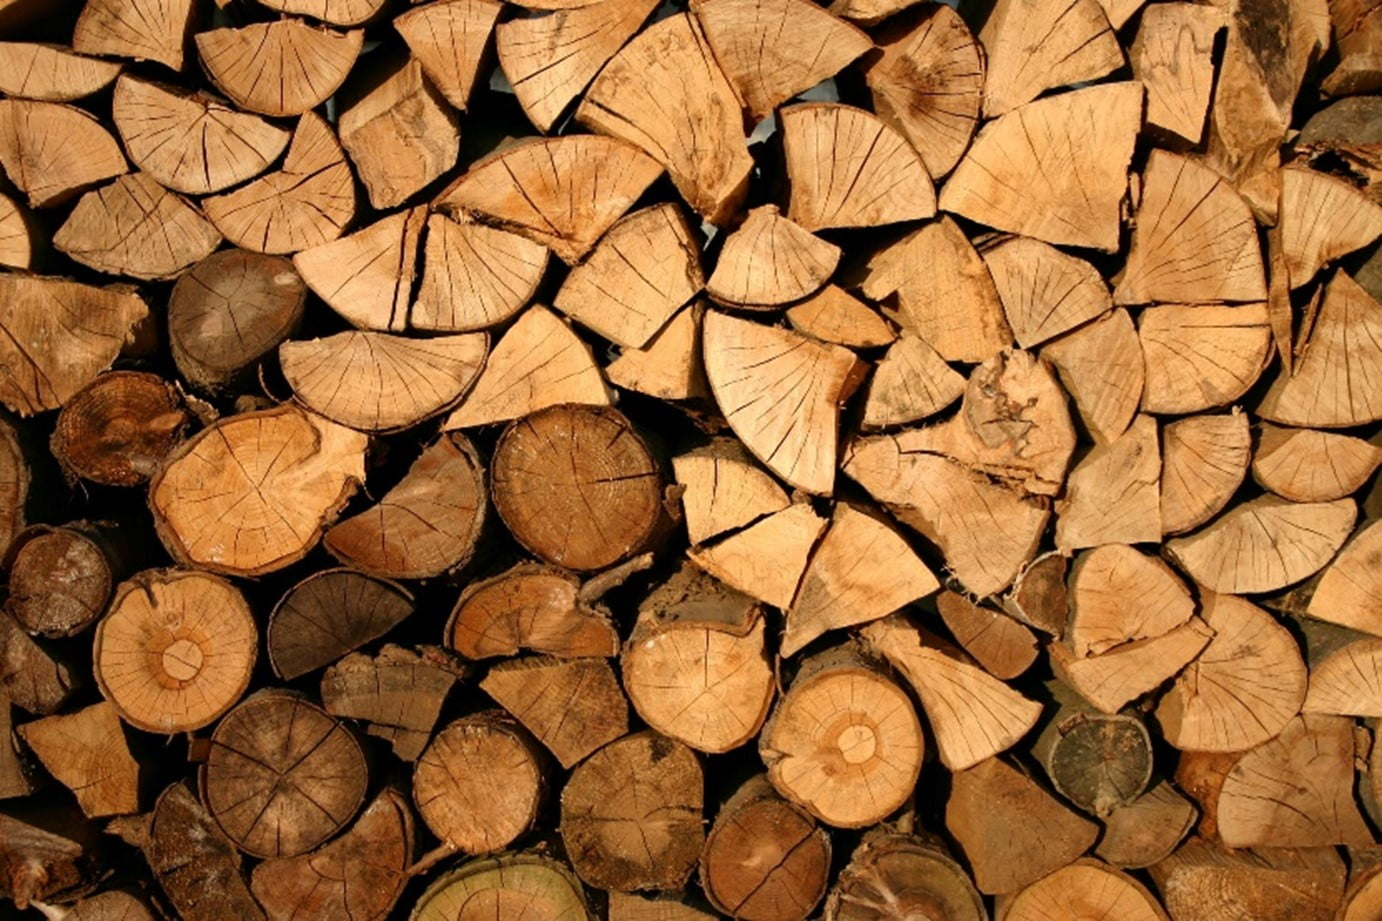 5 Ways to Store a Rick of Firewood